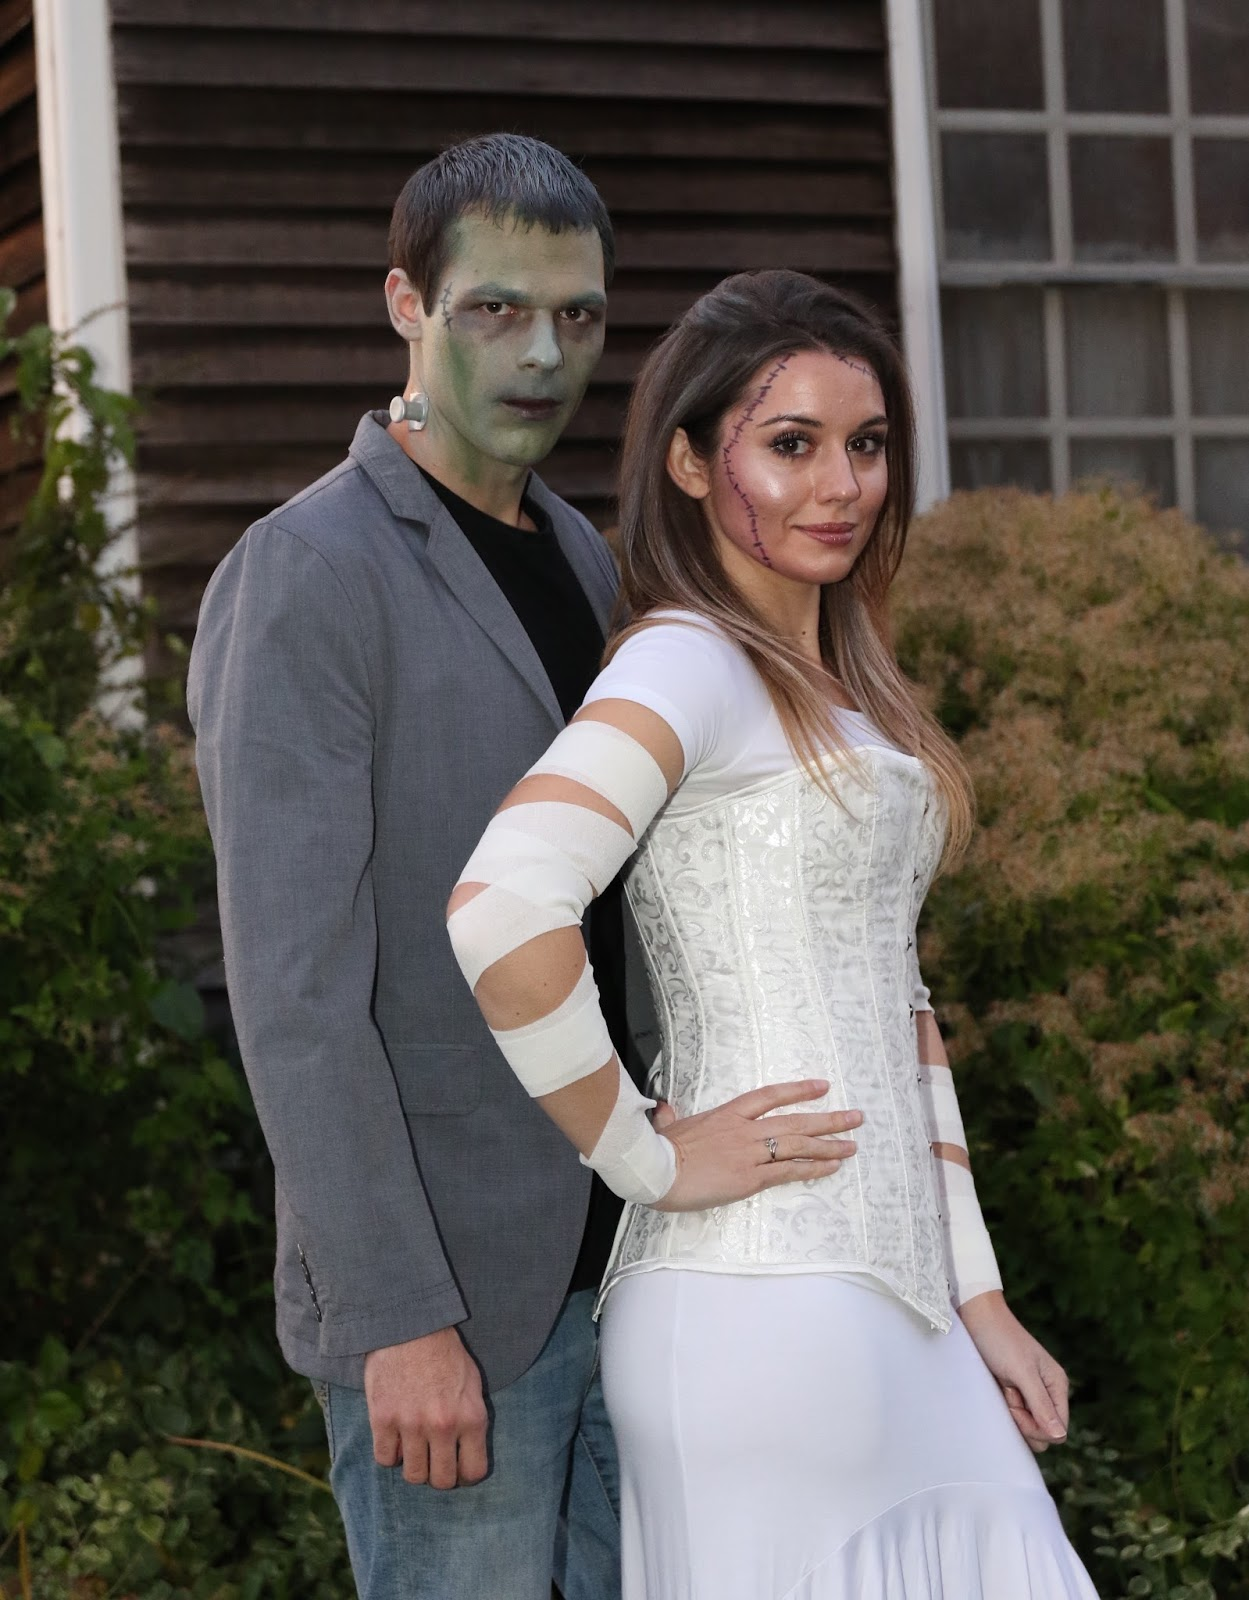 classy Frankenstein's monster and his bride costumes